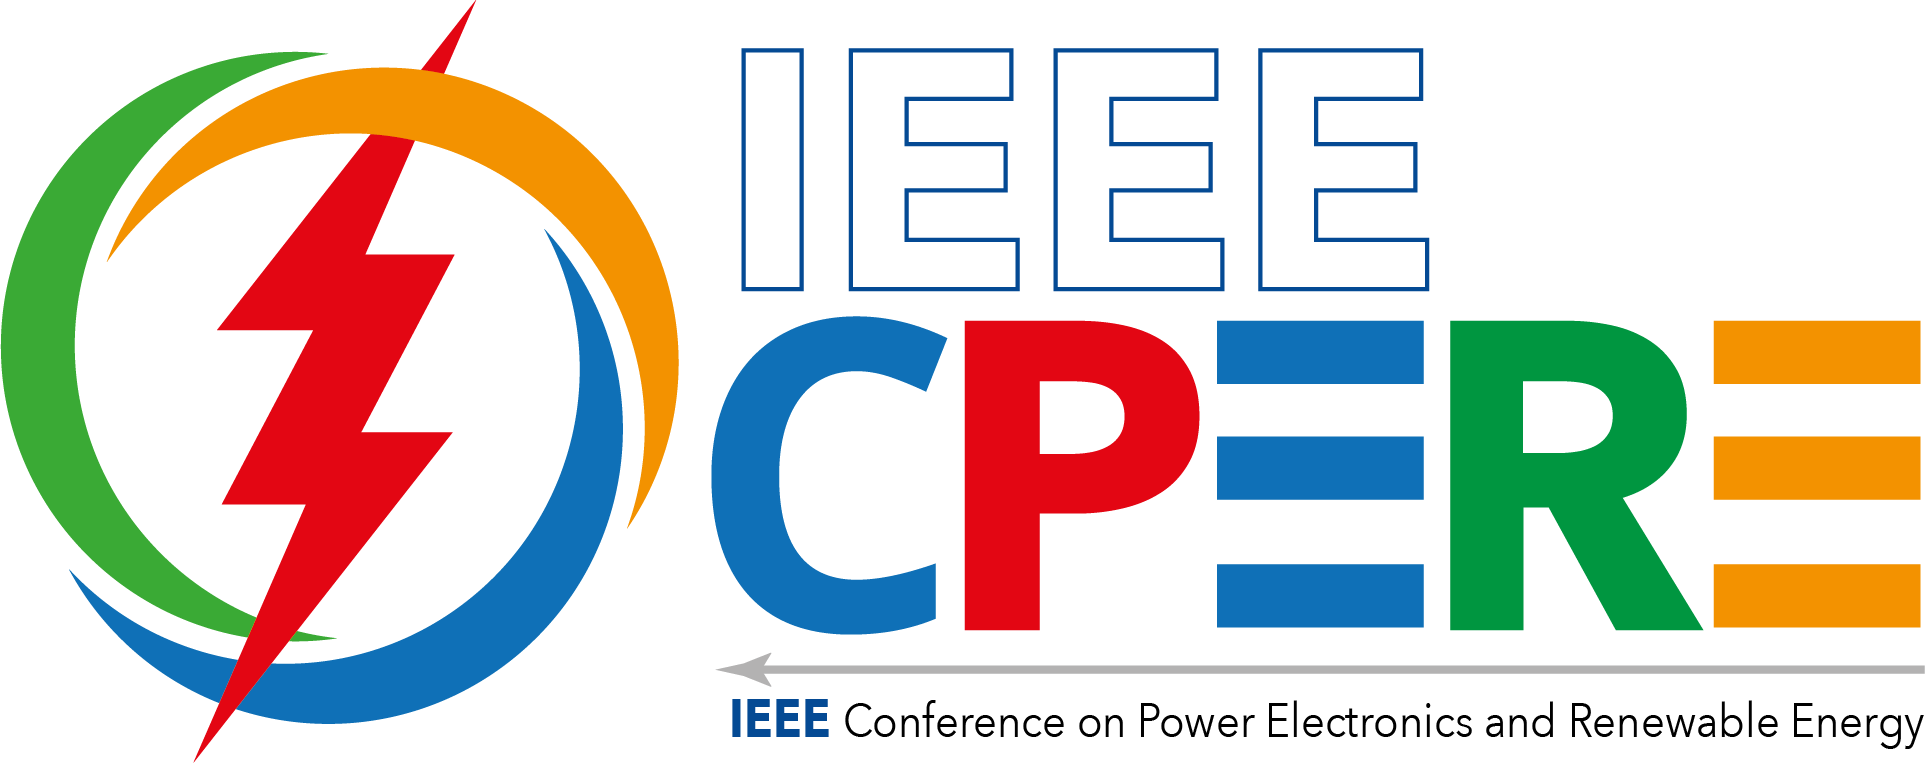 CPERE_logo